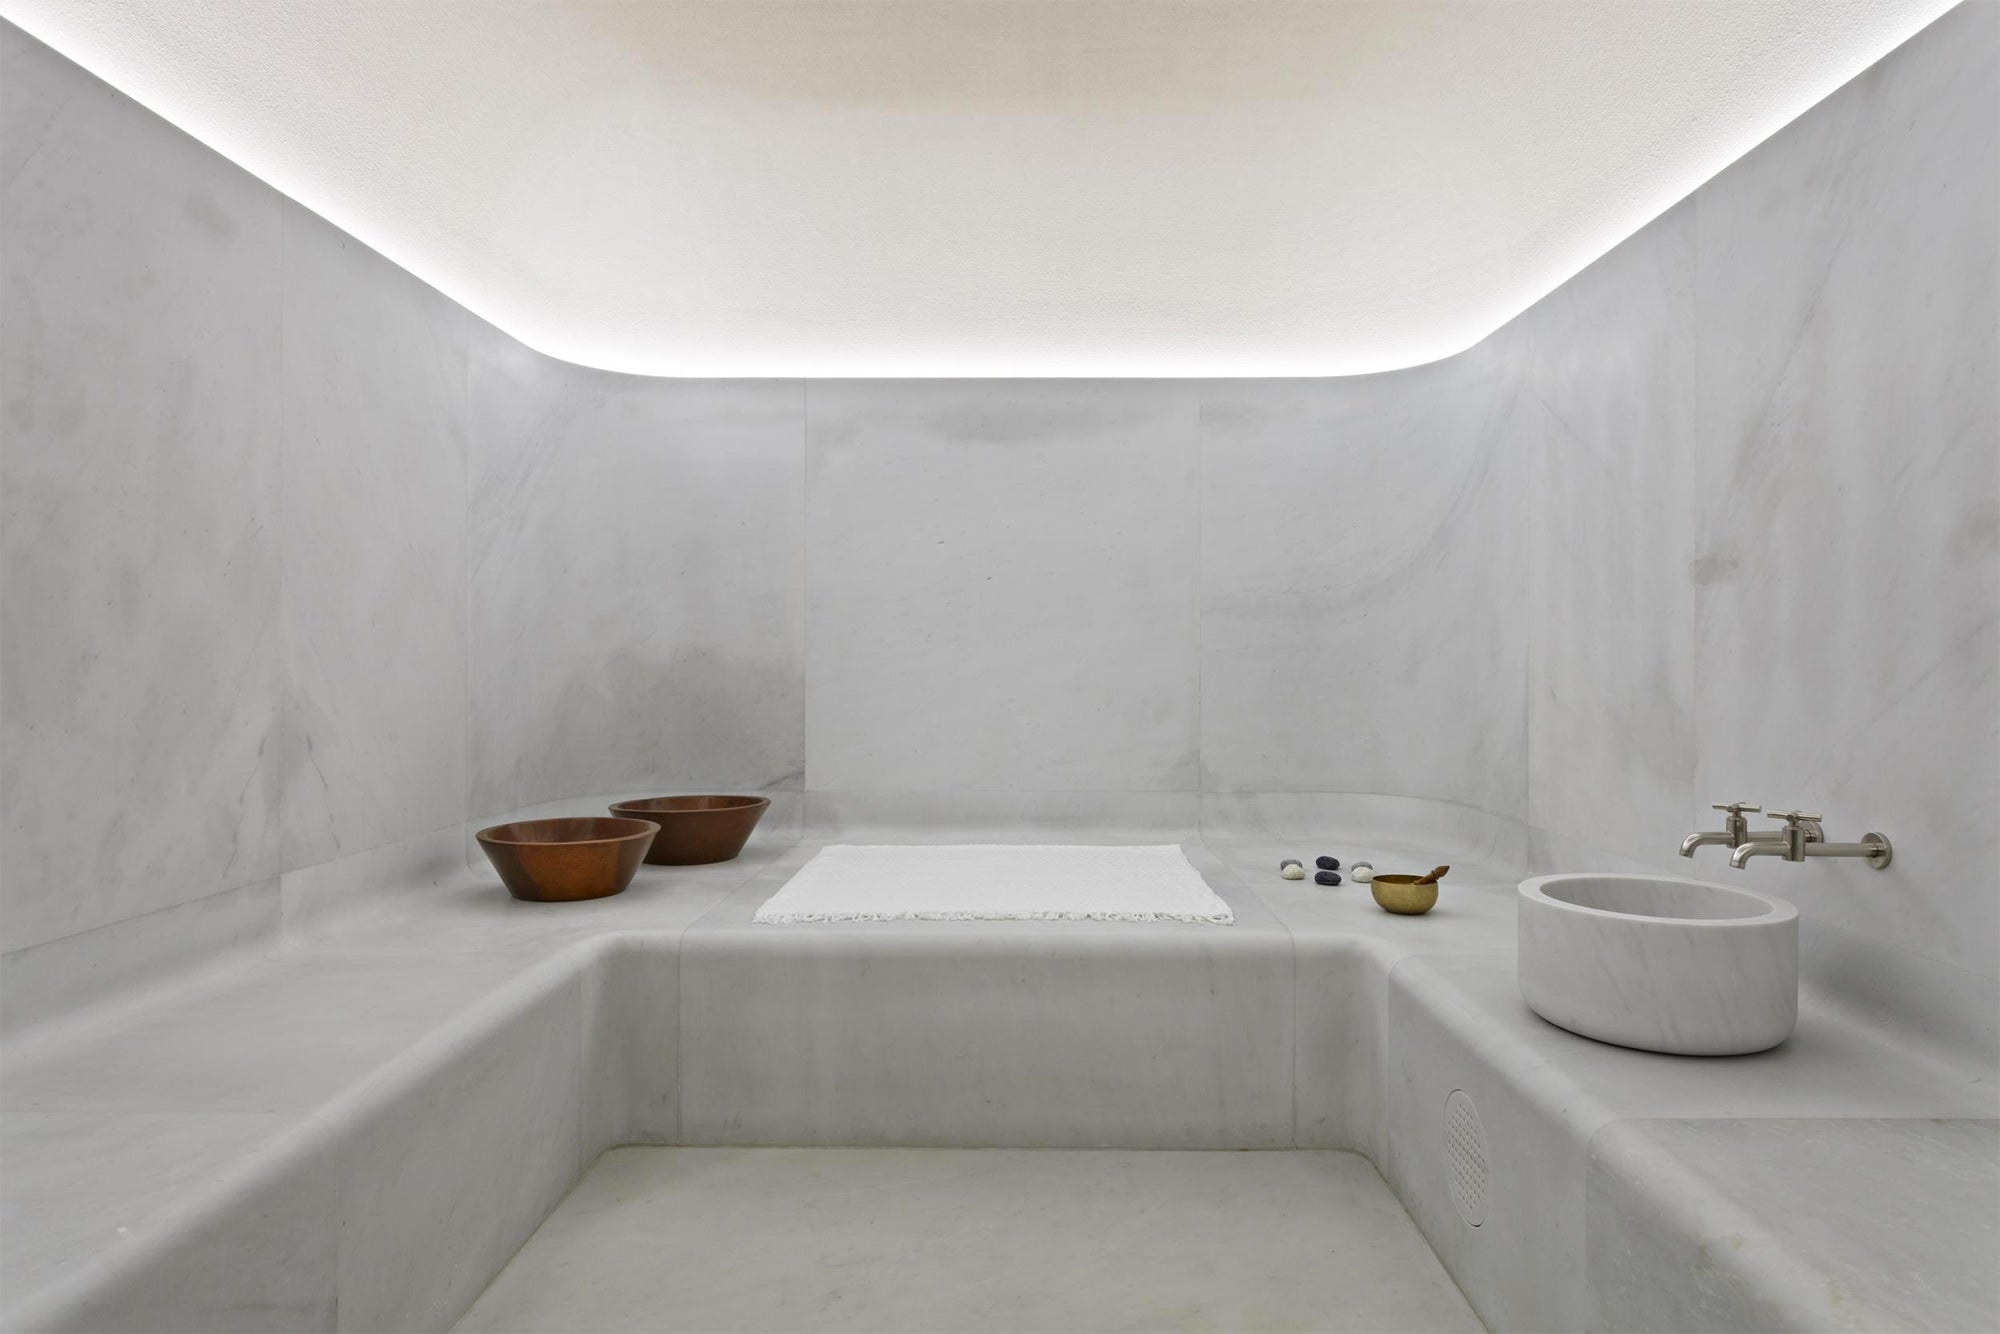 Sauna Design Is Minimalist Gold